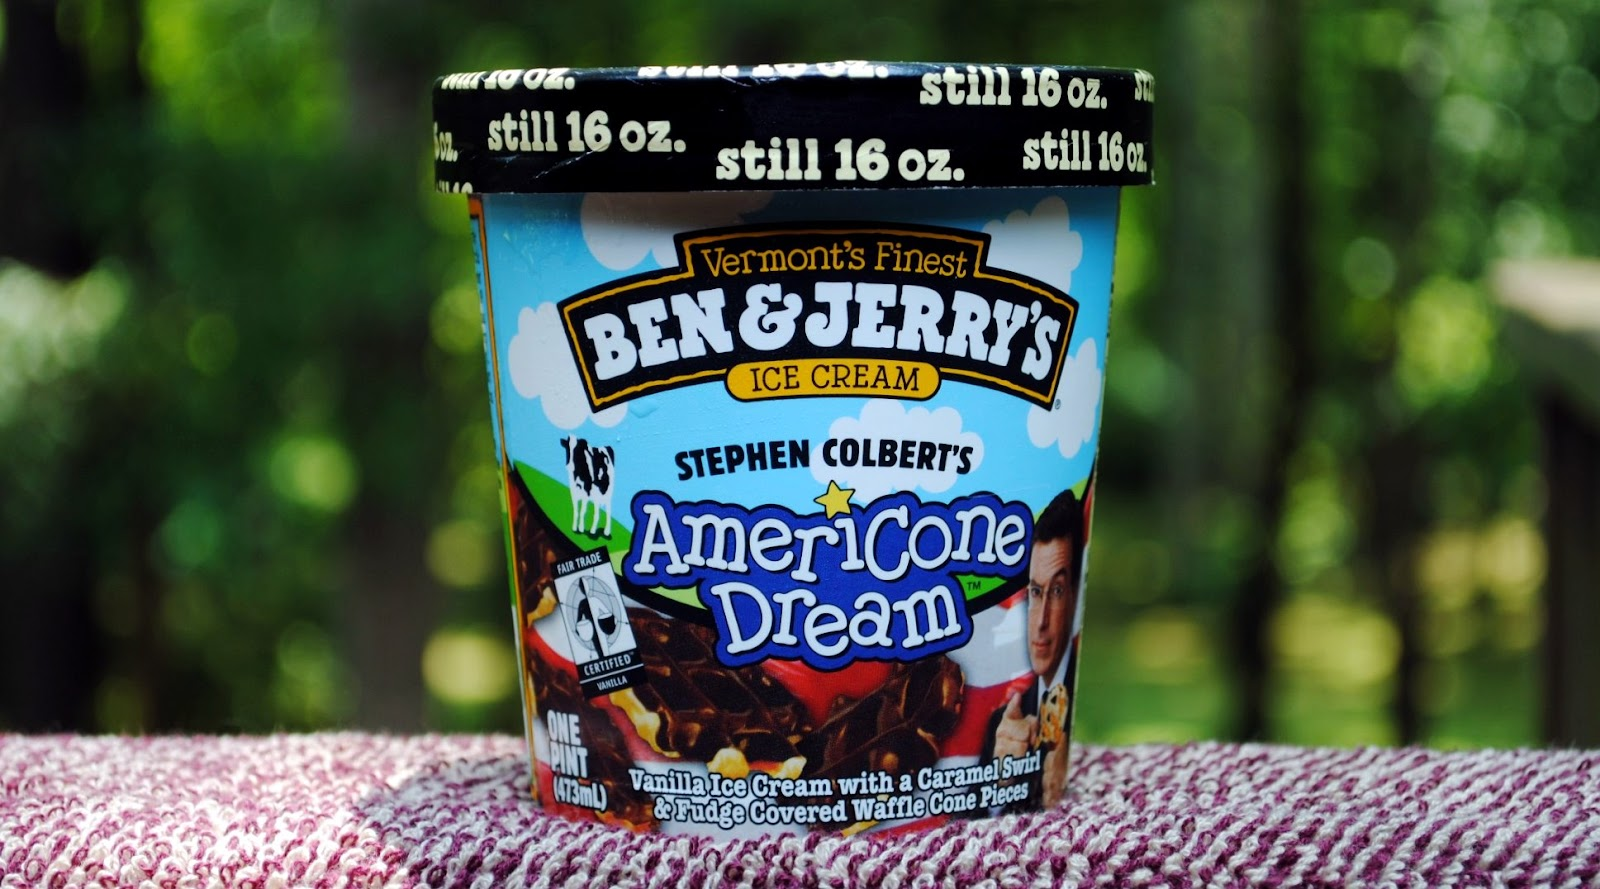 Food And Ice Cream Recipes Review Ben Jerry S Americone Dream Inspired by ben & jerry's americone dream ice cream! food and ice cream recipes blogger